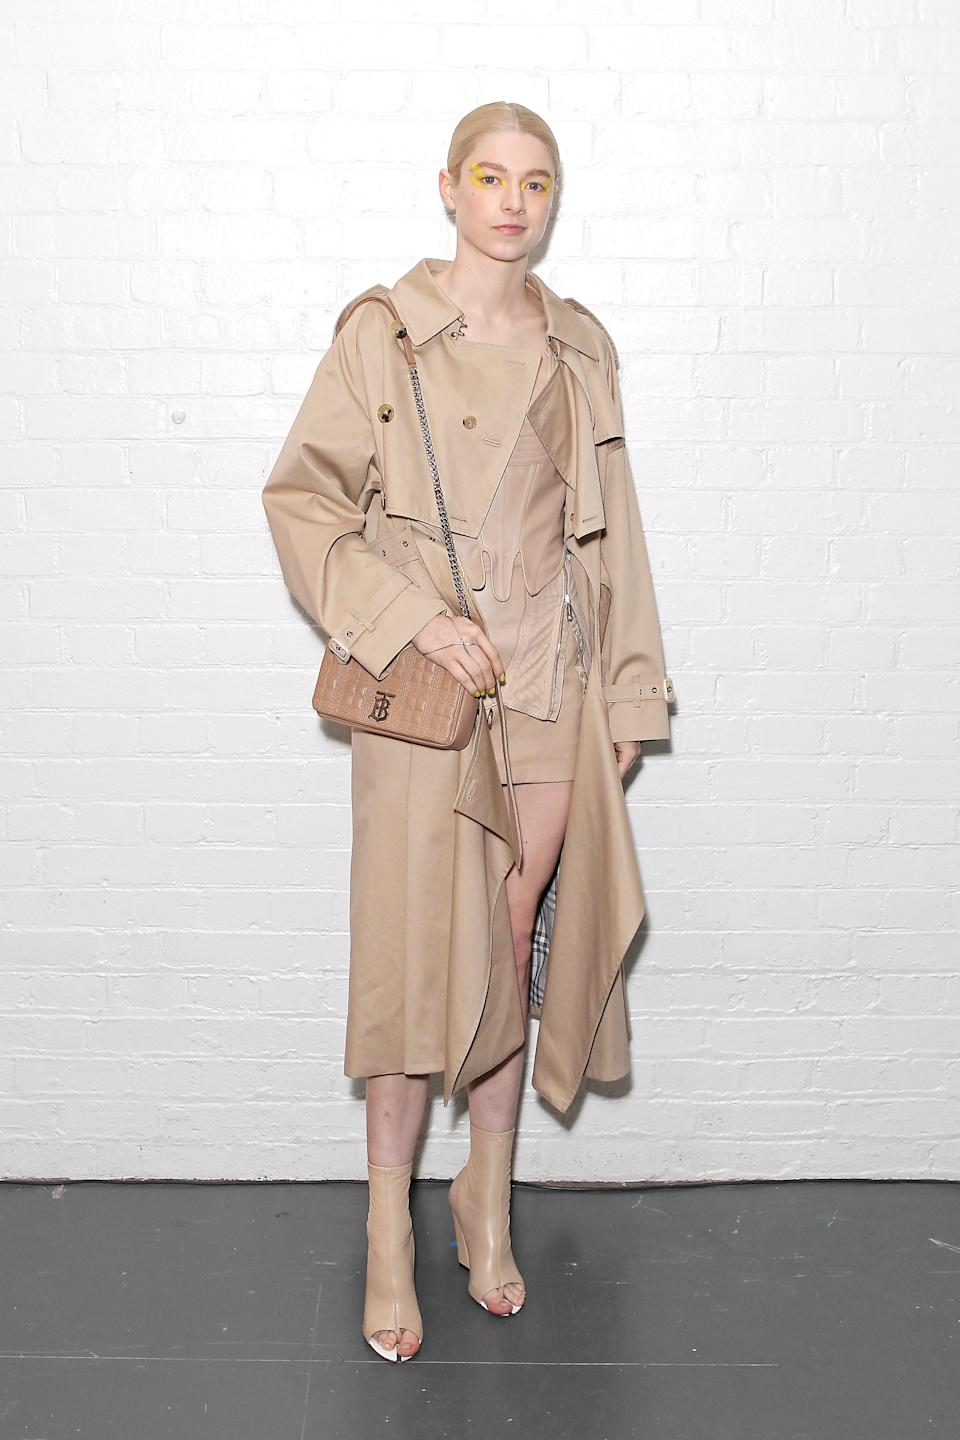 in Burberry at London Fashion Week, 2020